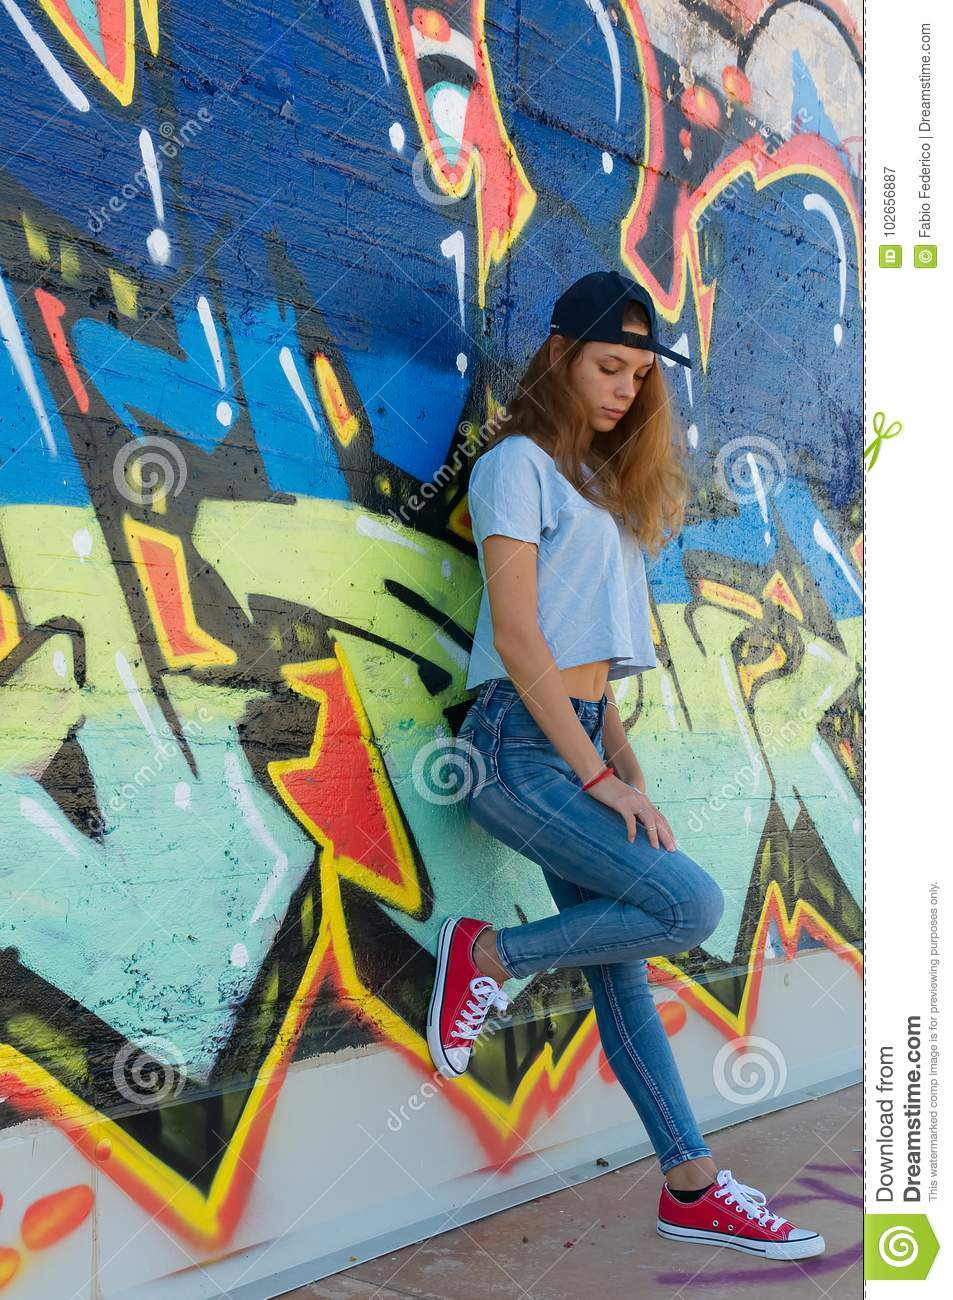 Sad teenager leaning against a graffiti wall